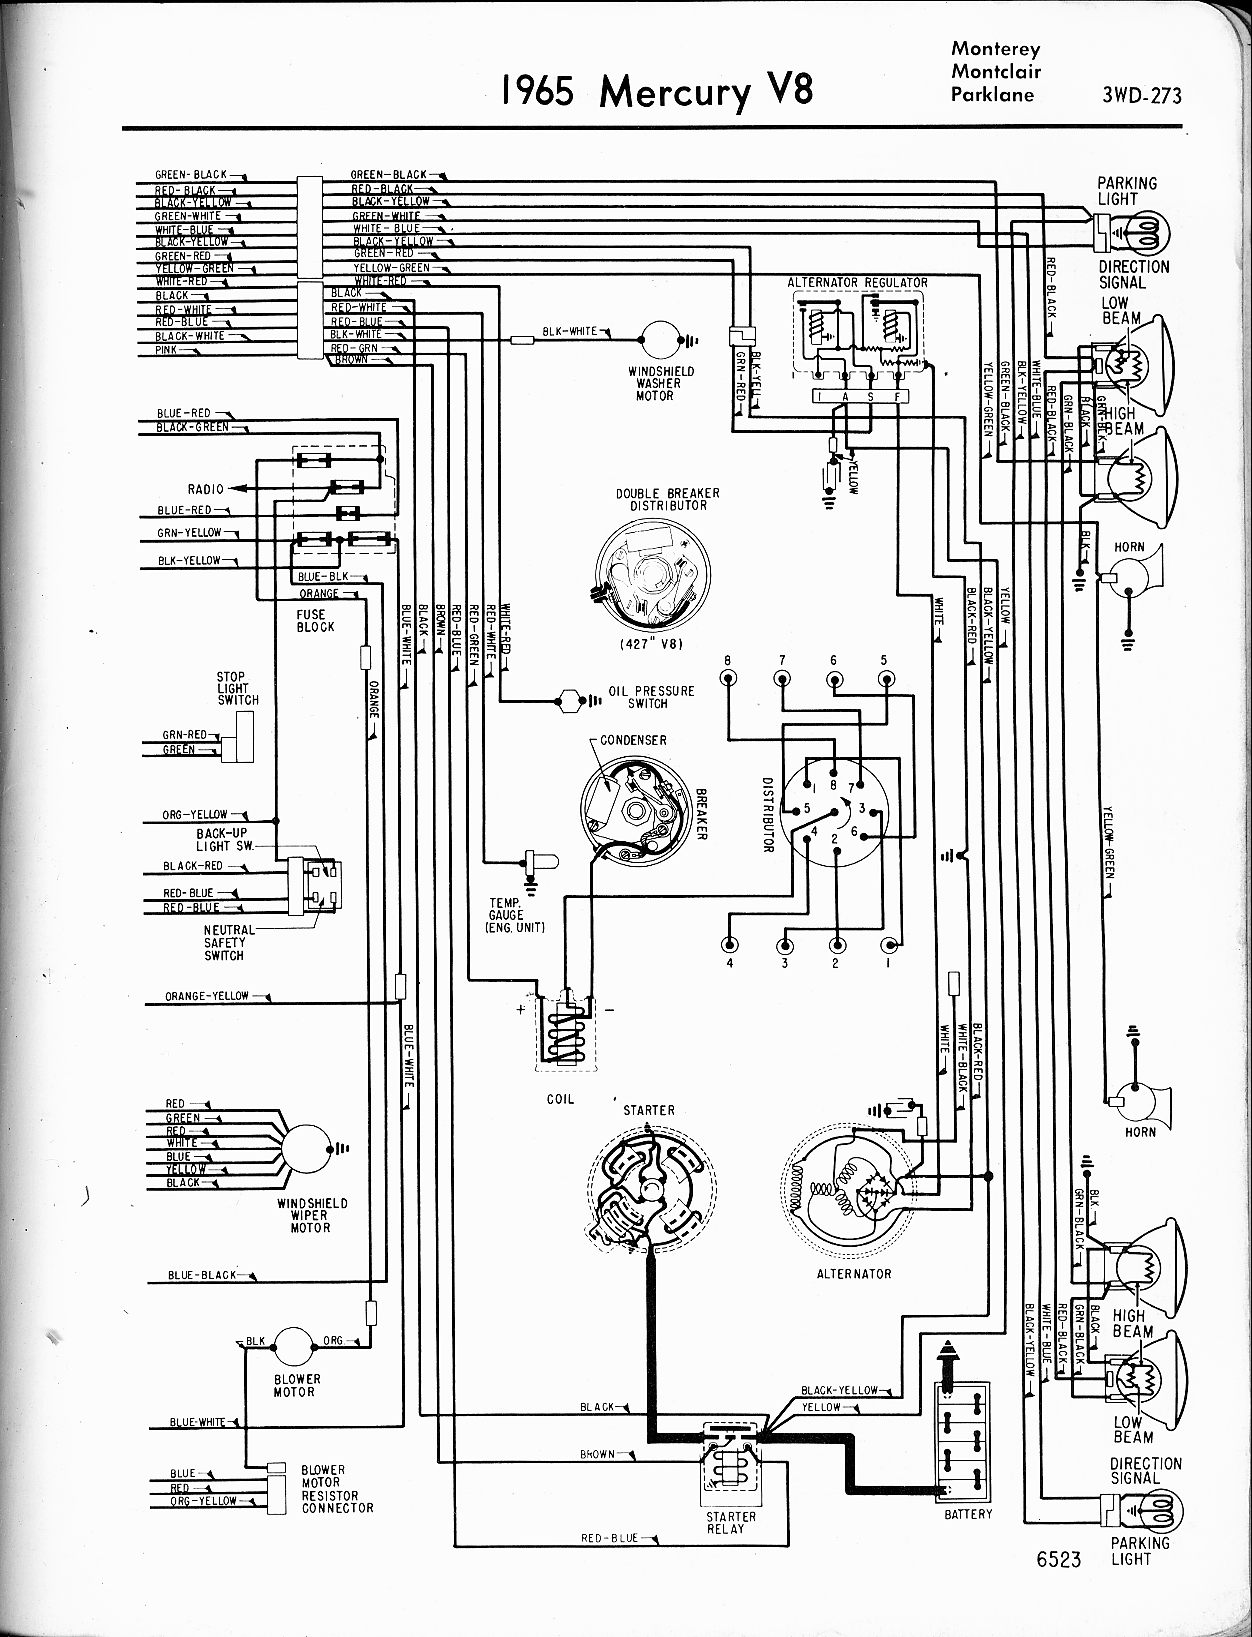 MWire5765 273 mercury wiring diagrams the old car manual project Simple Control Diagram at edmiracle.co